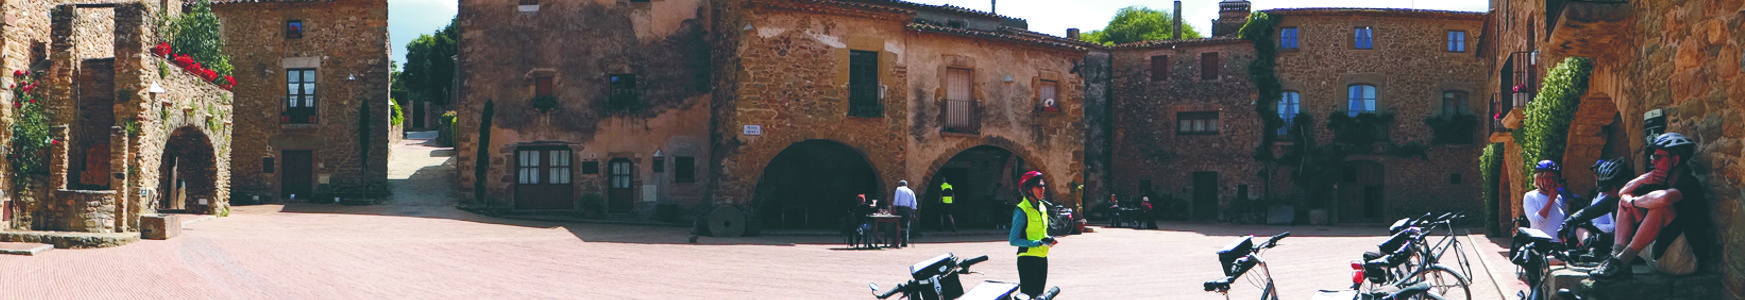 In this Terra Bike tour you can visit Monells wiht a nice central plaza. A spectacular medieval town near Girona